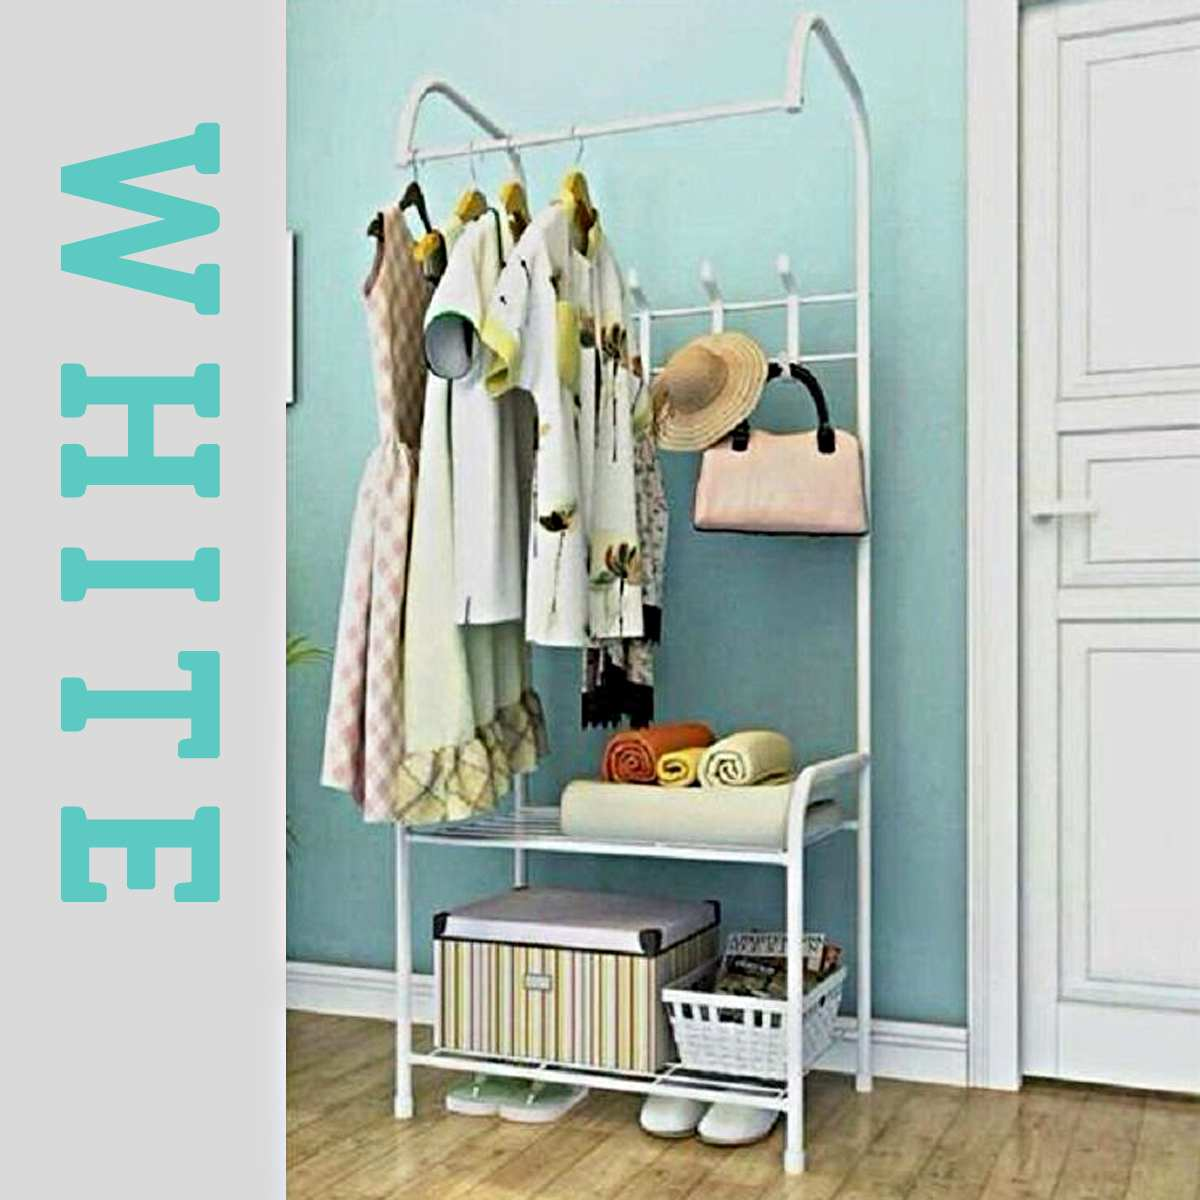 Colorful Simple Style Landing Clothing Holder Hanger Coat Rack Floor Standing Storage Shelf Clothe Hanger Rack Bedroom Furniture